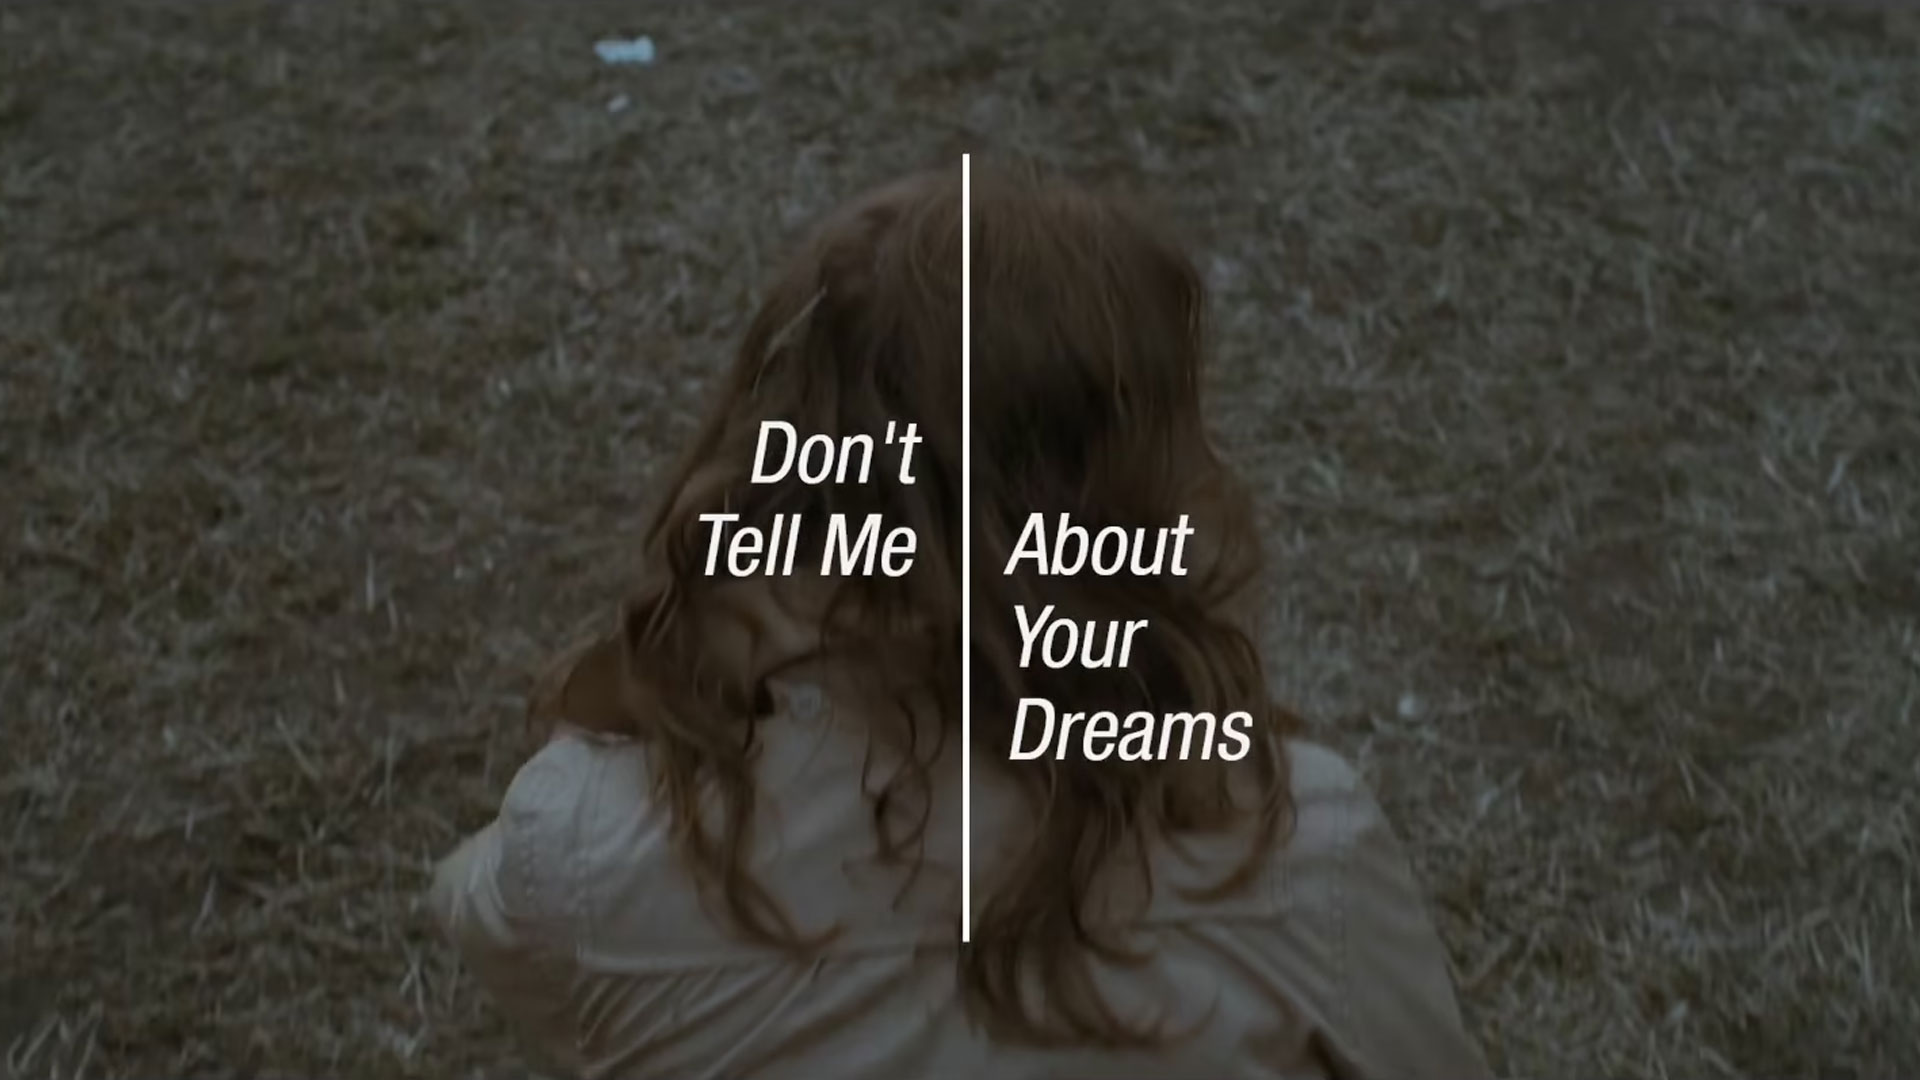 Don't Tell Me About Your Dreams